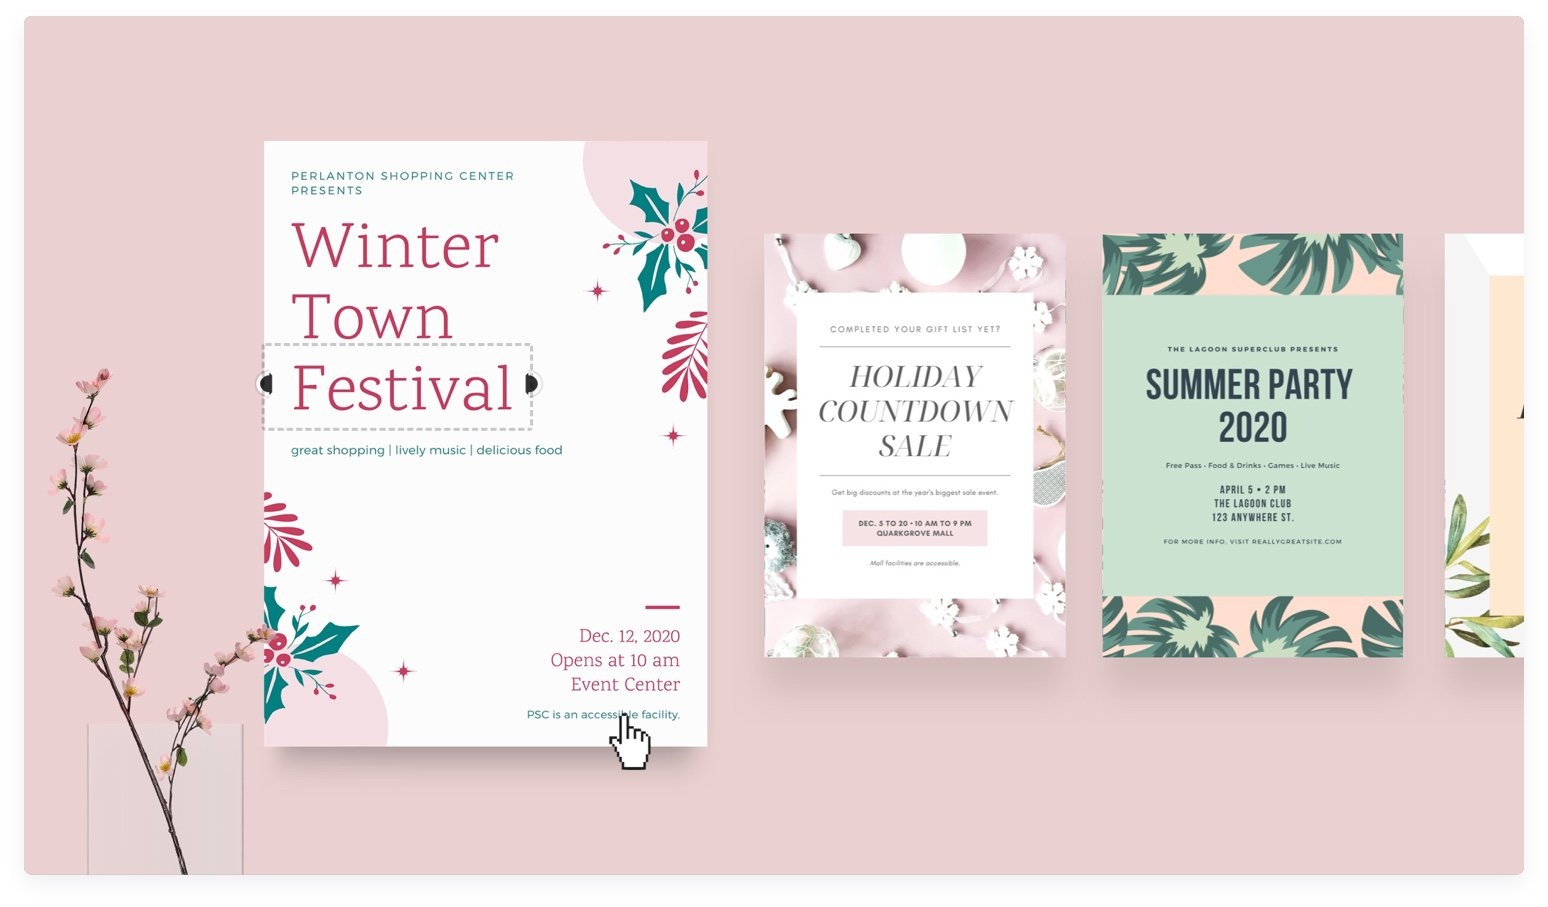 Free Online Flyer Maker: Design Custom Flyers With Canva - Create Your Own Free Printable Flyers